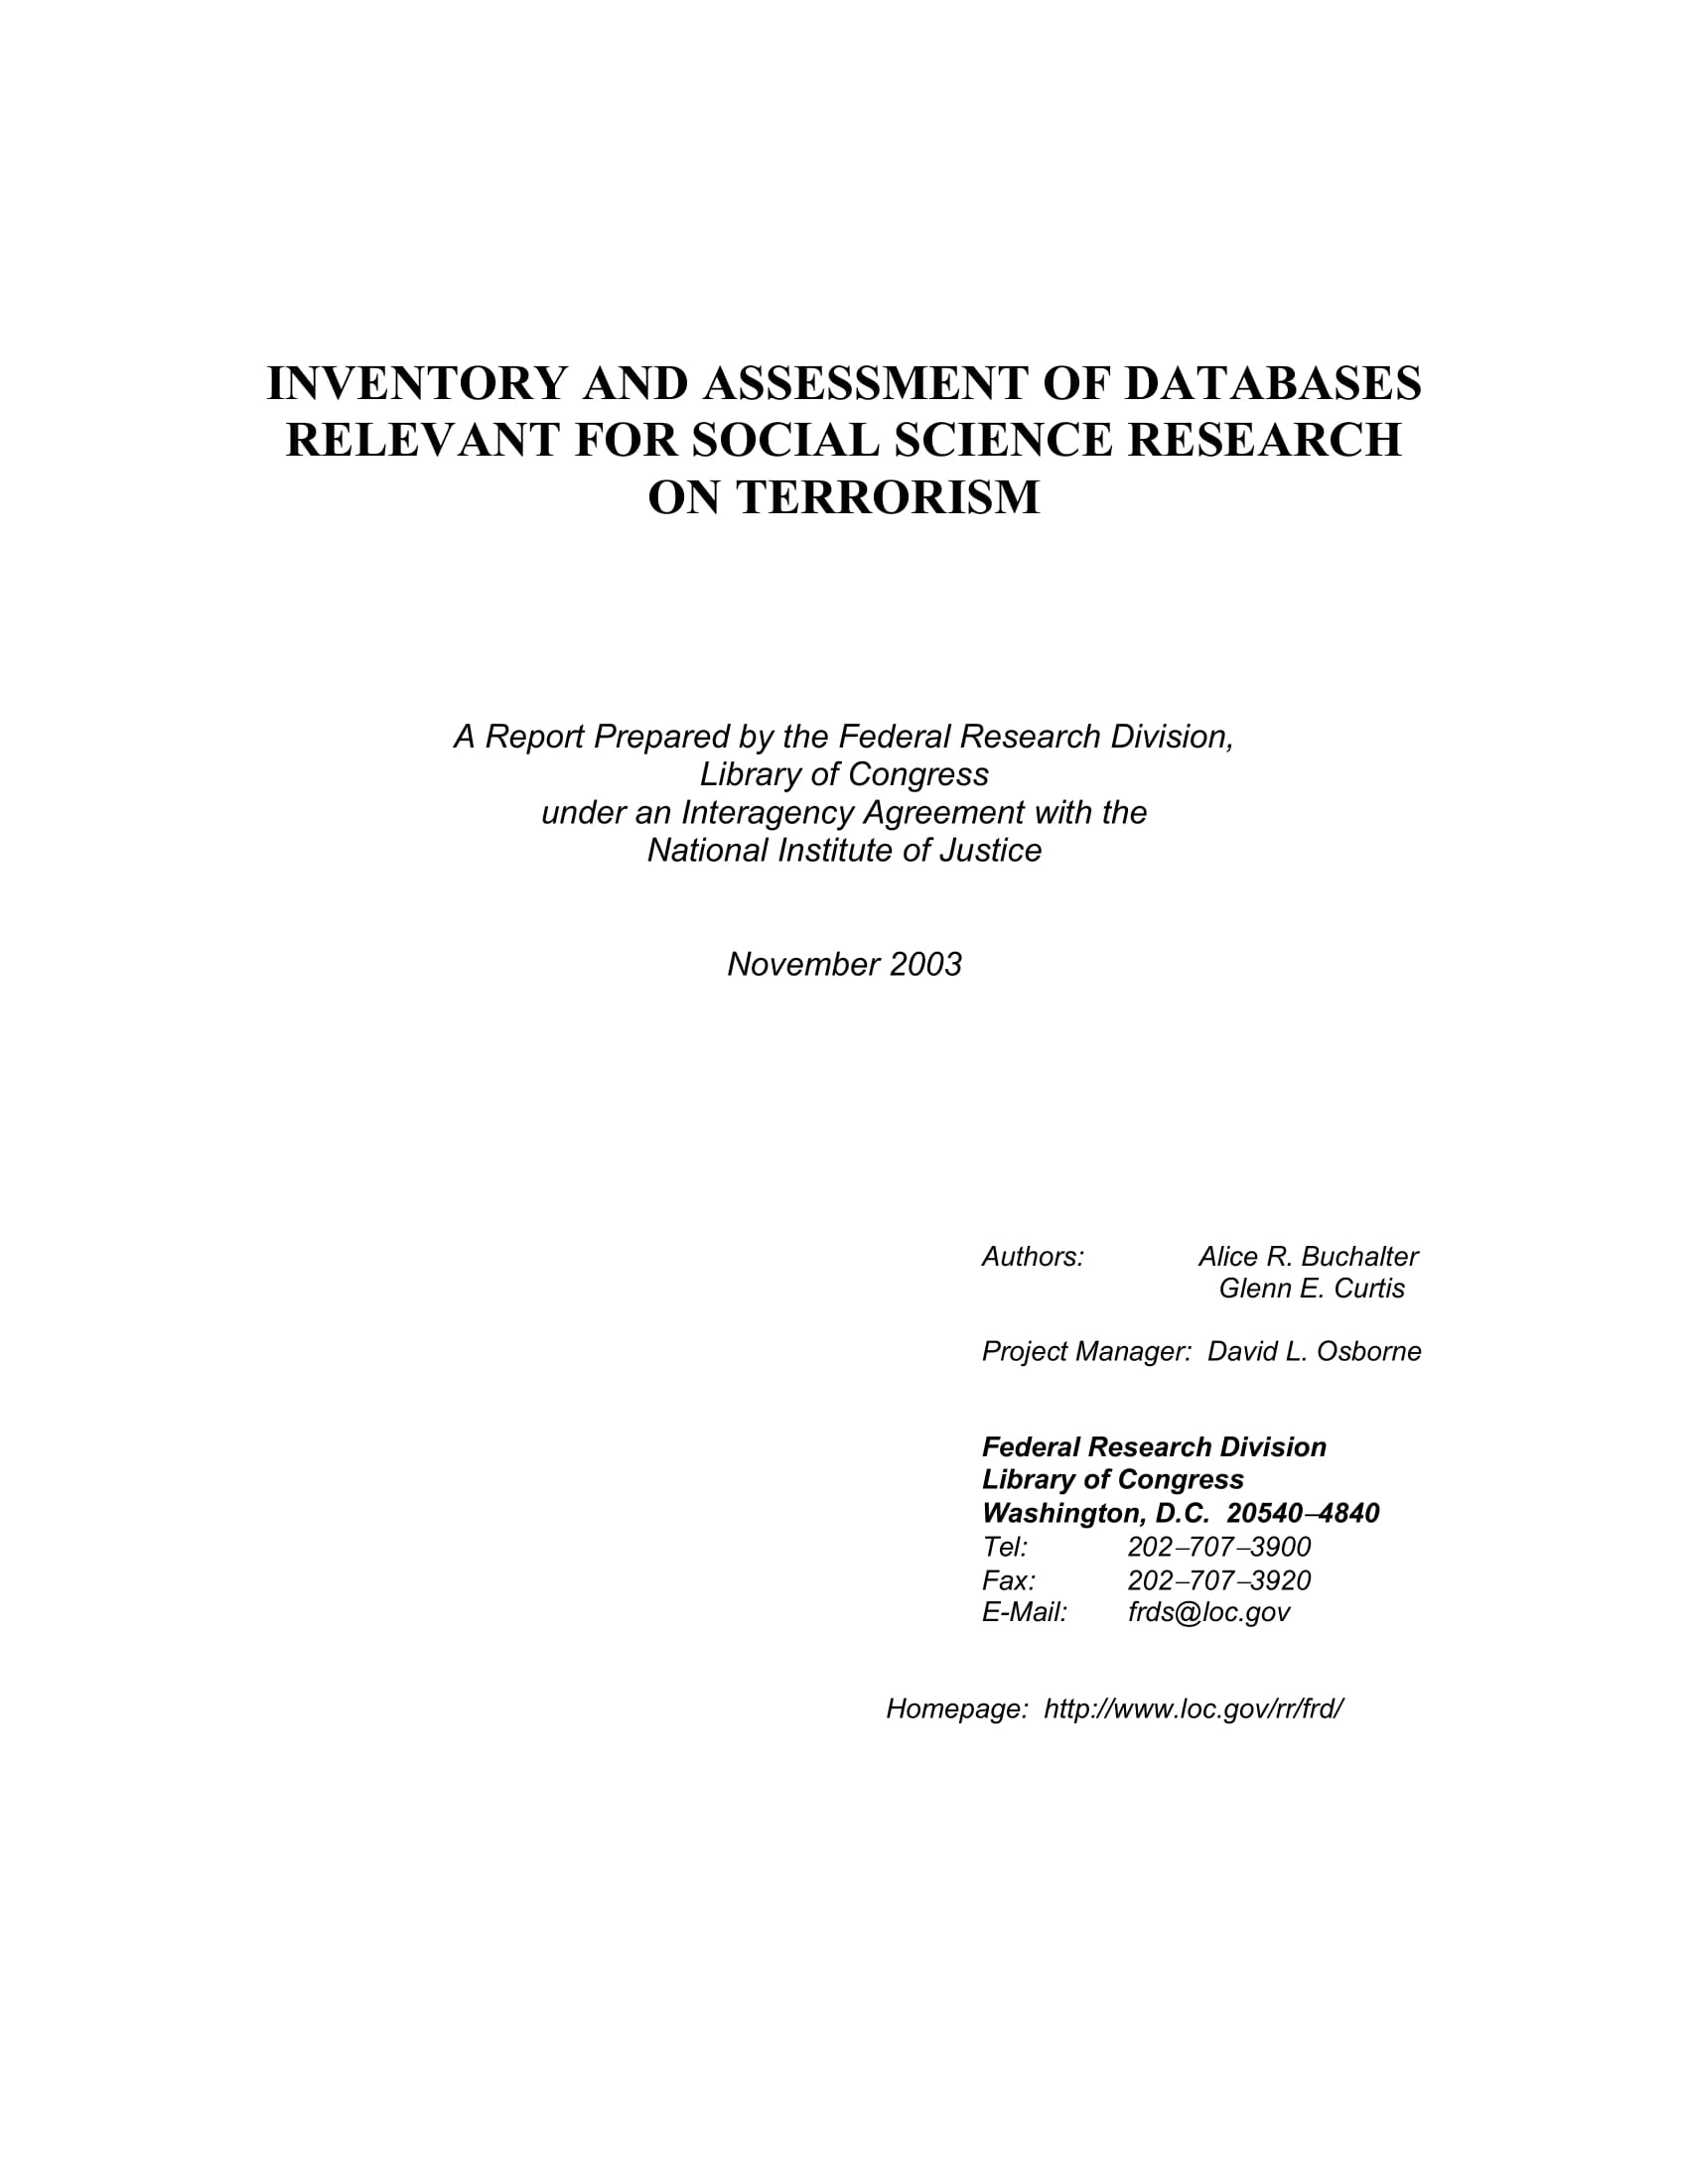 inventory and assessment of databases relevant for social science research on terrorism example 01